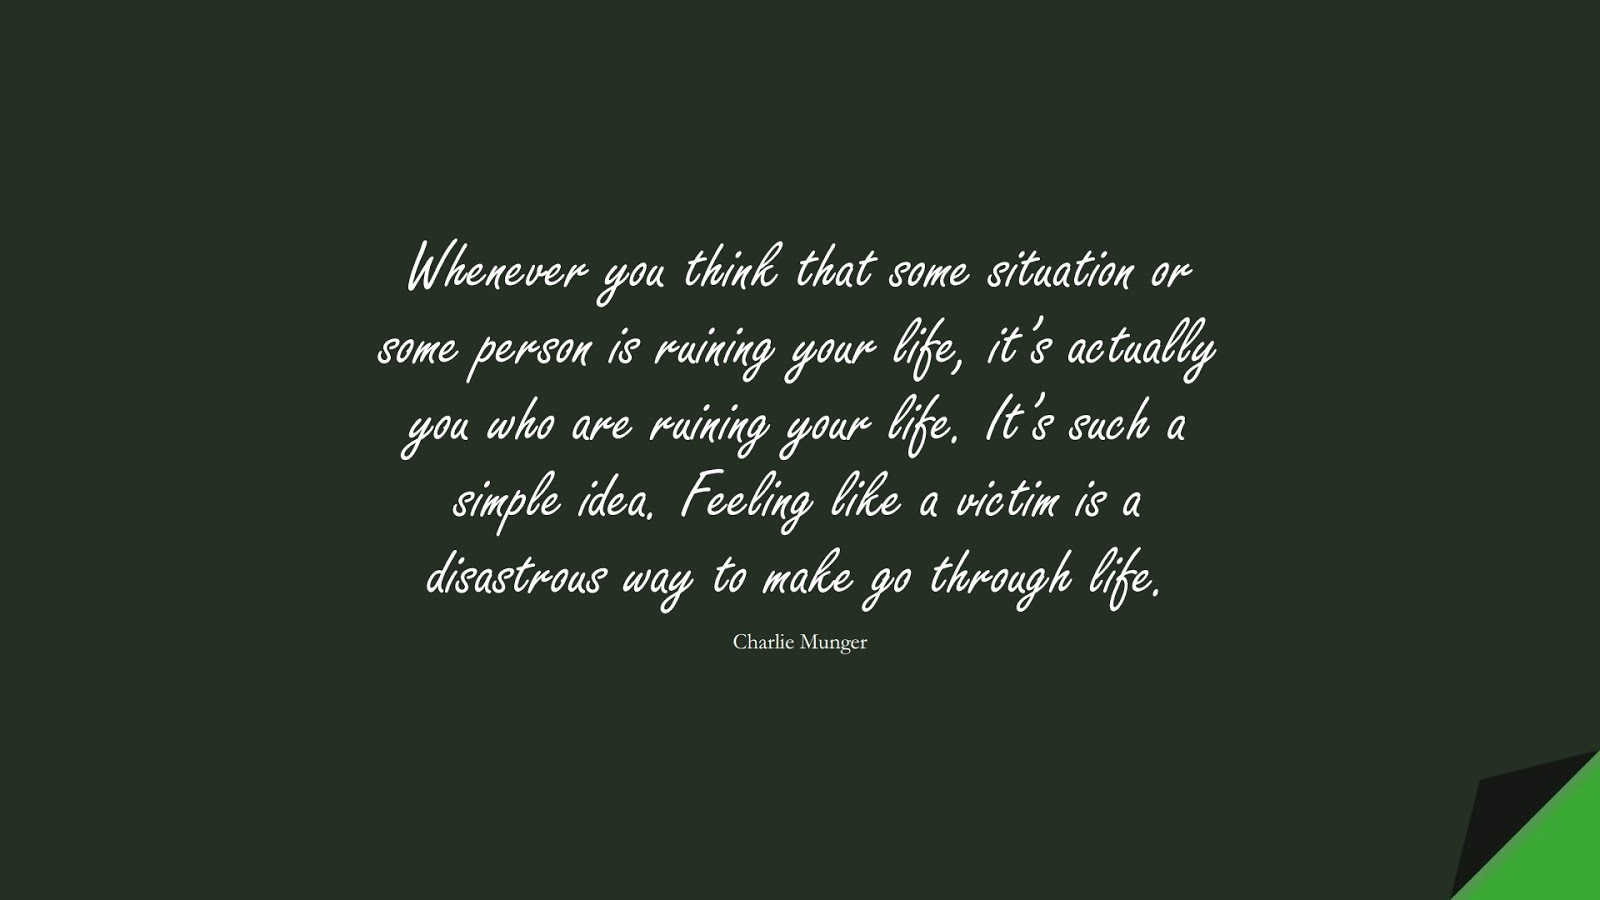 Whenever you think that some situation or some person is ruining your life, it's actually you who are ruining your life. It's such a simple idea. Feeling like a victim is a disastrous way to make go through life. (Charlie Munger);  #CharacterQuotes